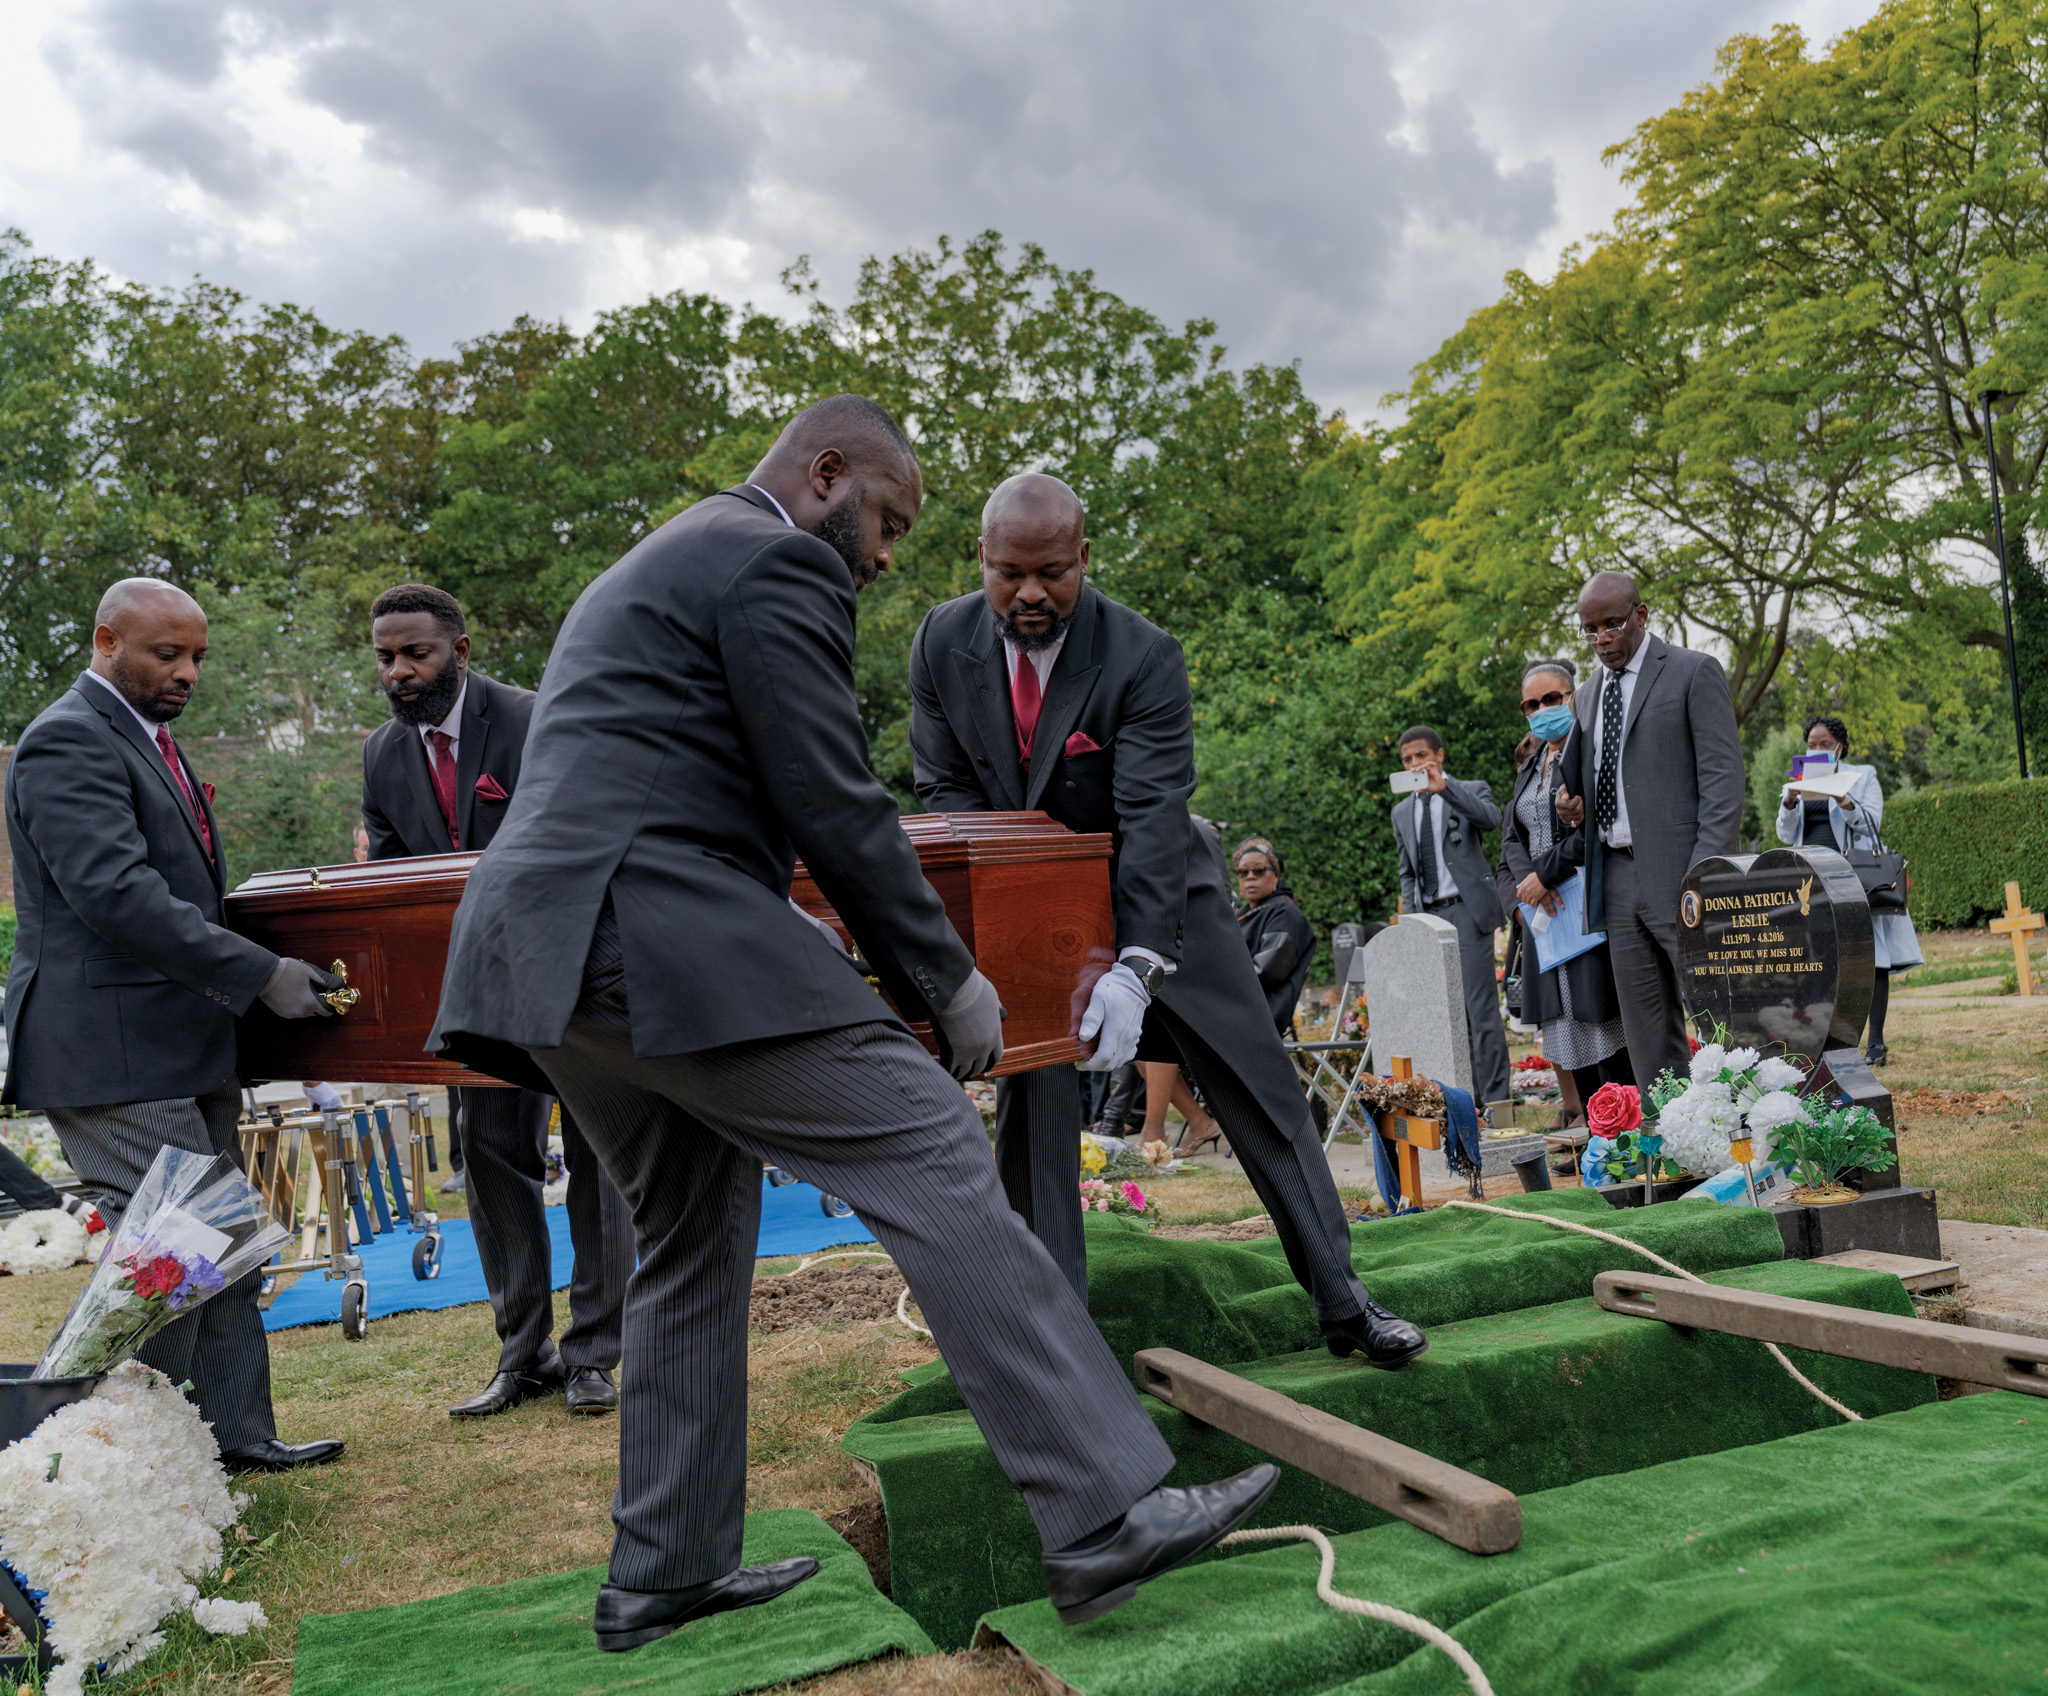 Picture of pallbearers lowering a coffin into a grave